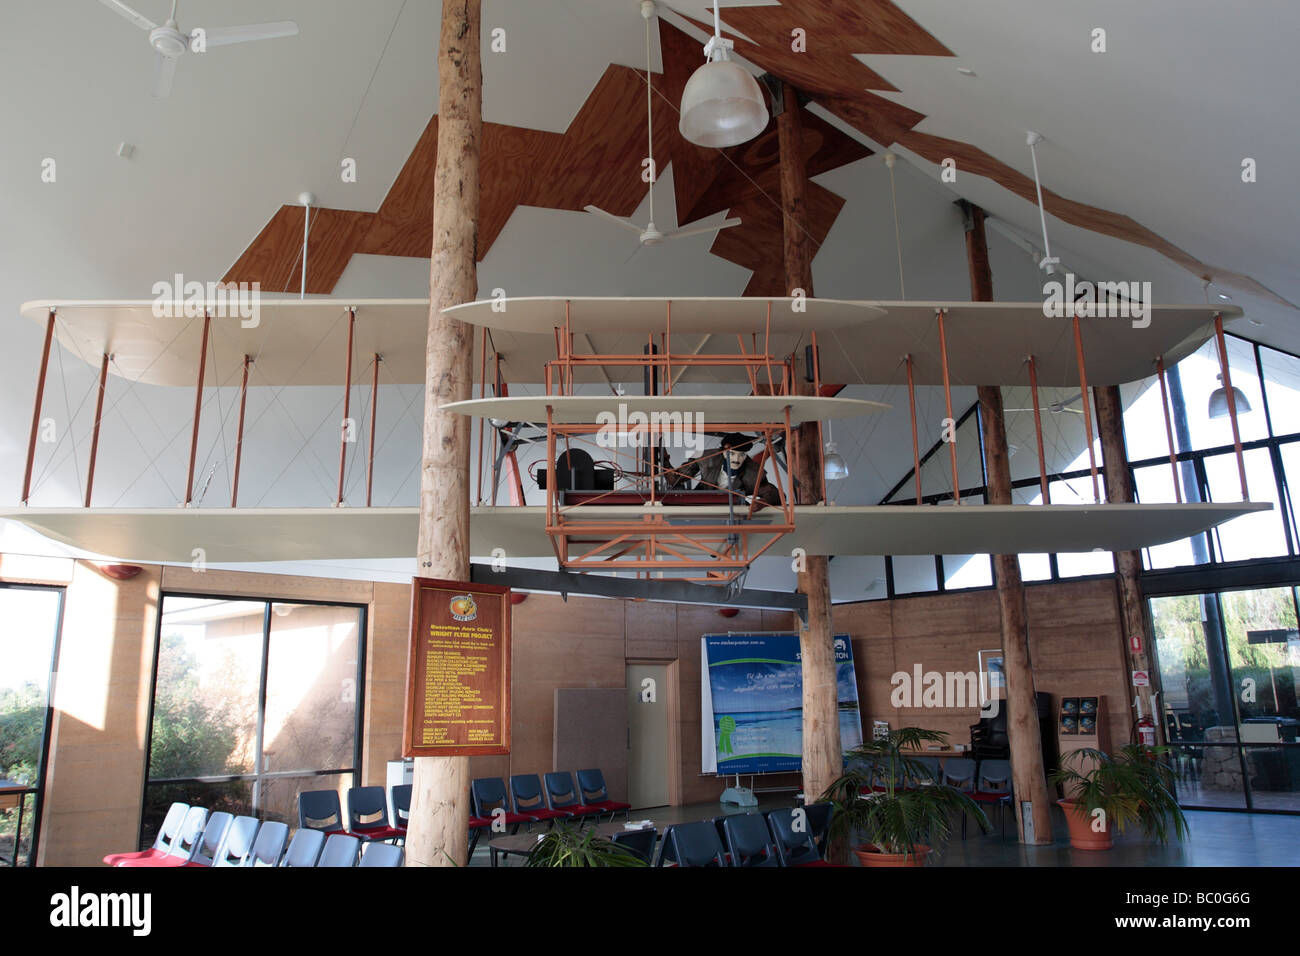 Model of the Wright brothers flier at Busselton Airport Western Australia - Stock Image